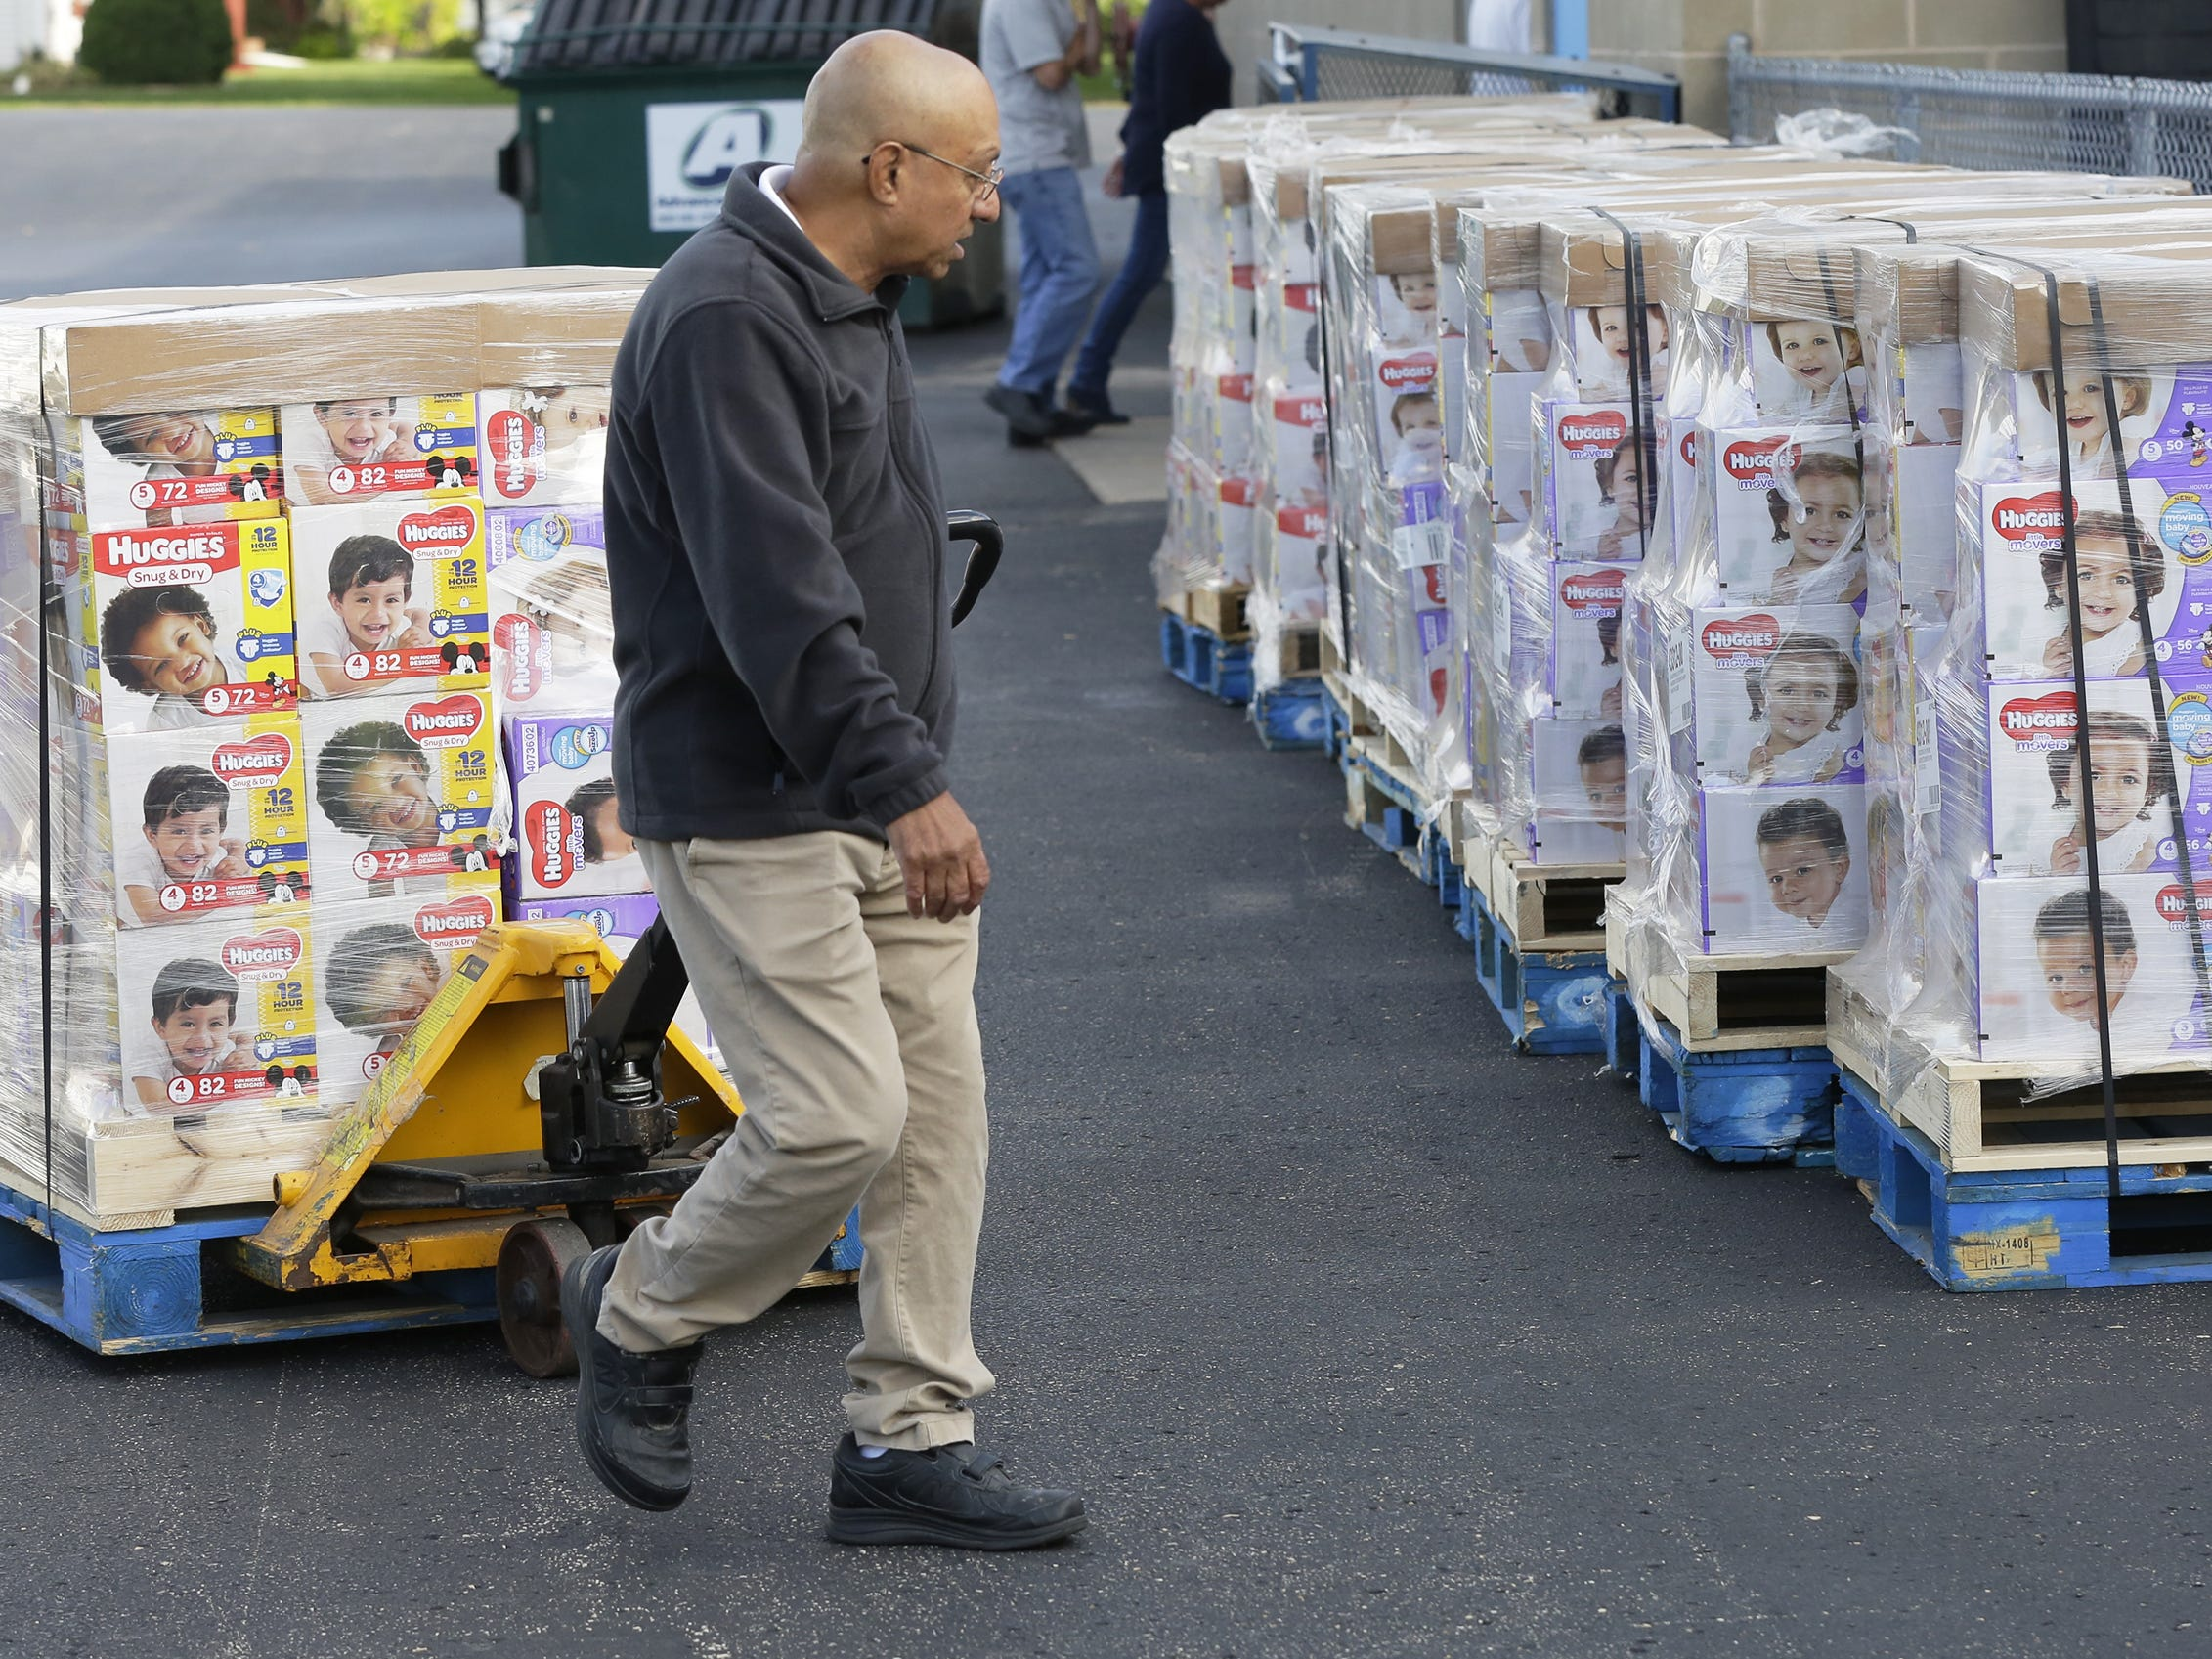 Hussain Sattar of Father Carr's Place 2B helps move pallets of diapers Monday, Sept. 24, 2018, at the Oshkosh Area Community Food Pantry. USA TODAY NETWORK-Wisconsin and Kimberly-Clark Corp. donated 100,400 diapers to nine food pantries in the area.